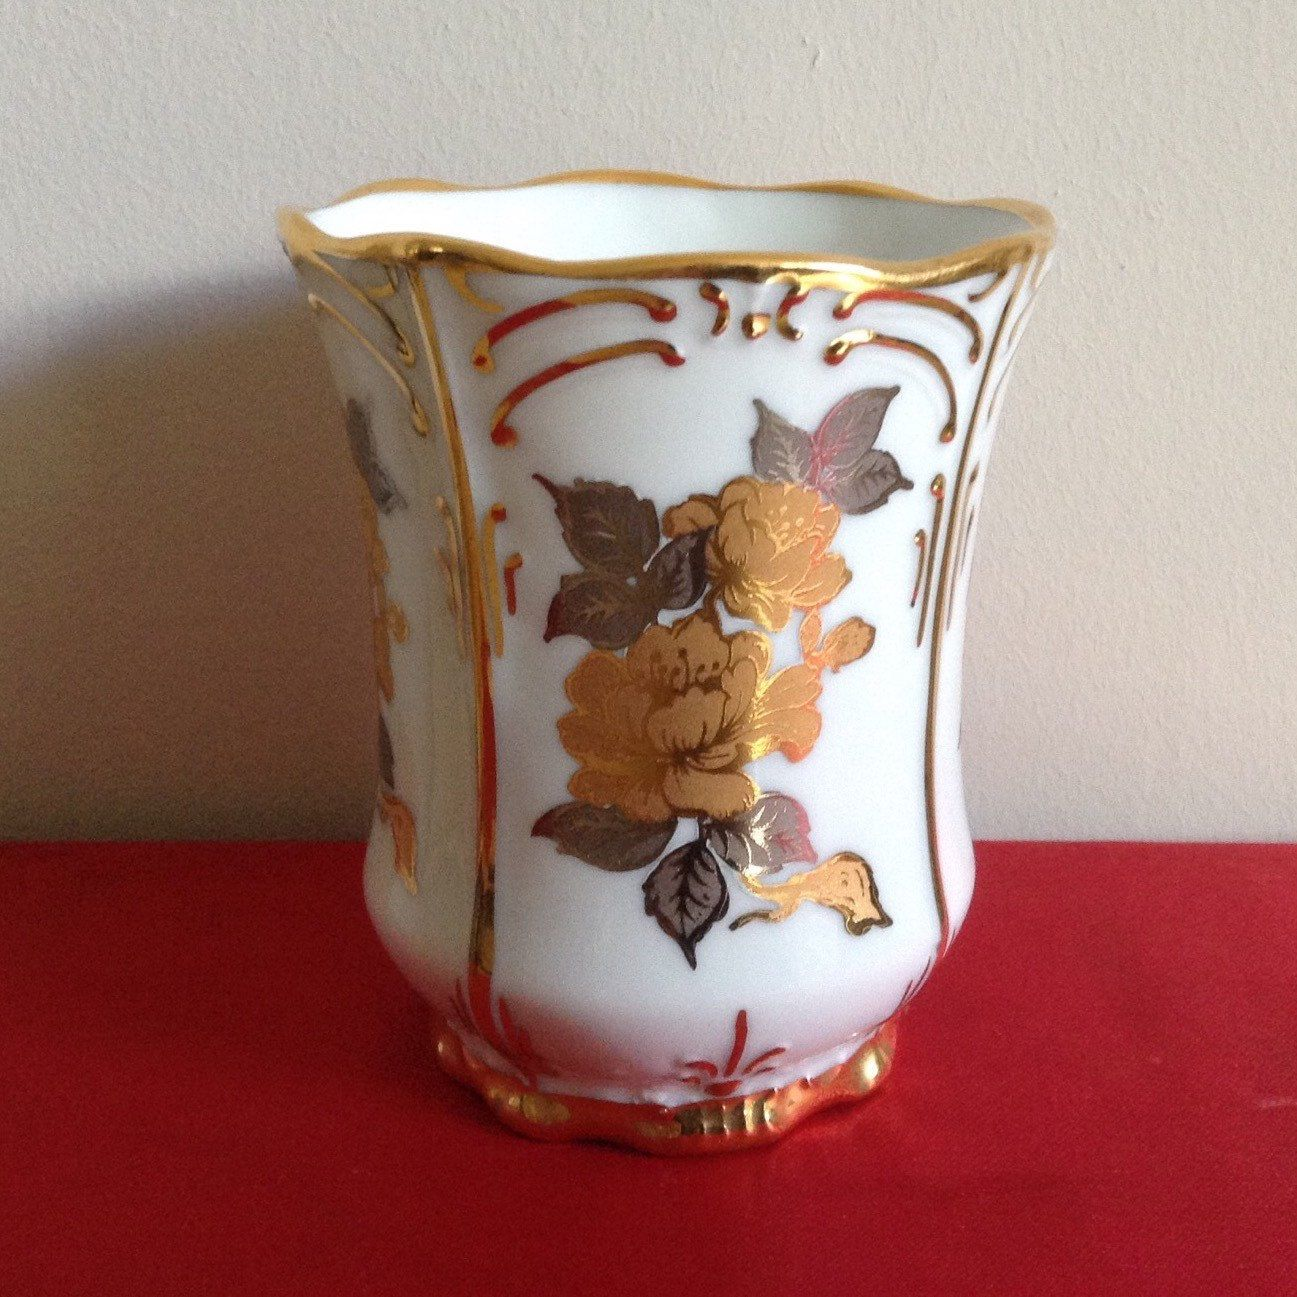 Vintage Porcelain Vase By Artlyns Made